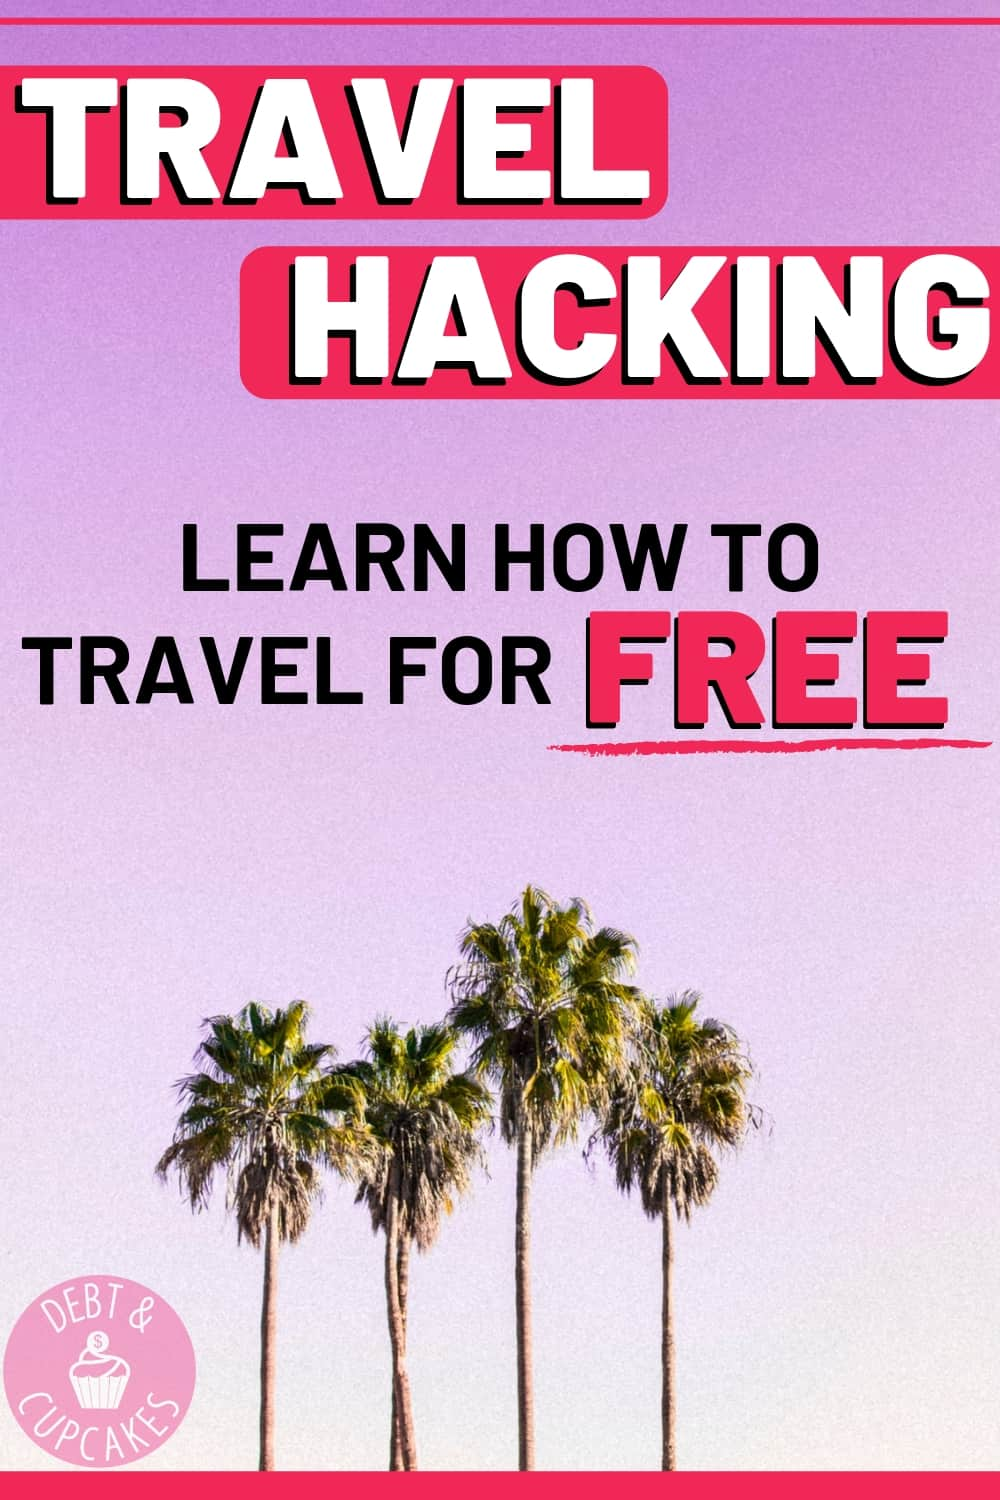 What exactly is travel hacking? Travel hacking is the art of using credit card reward points to cover the expenses of hotels, airfare, car rentals, and many other common vacation costs. Learn to travel hack and save more money today!